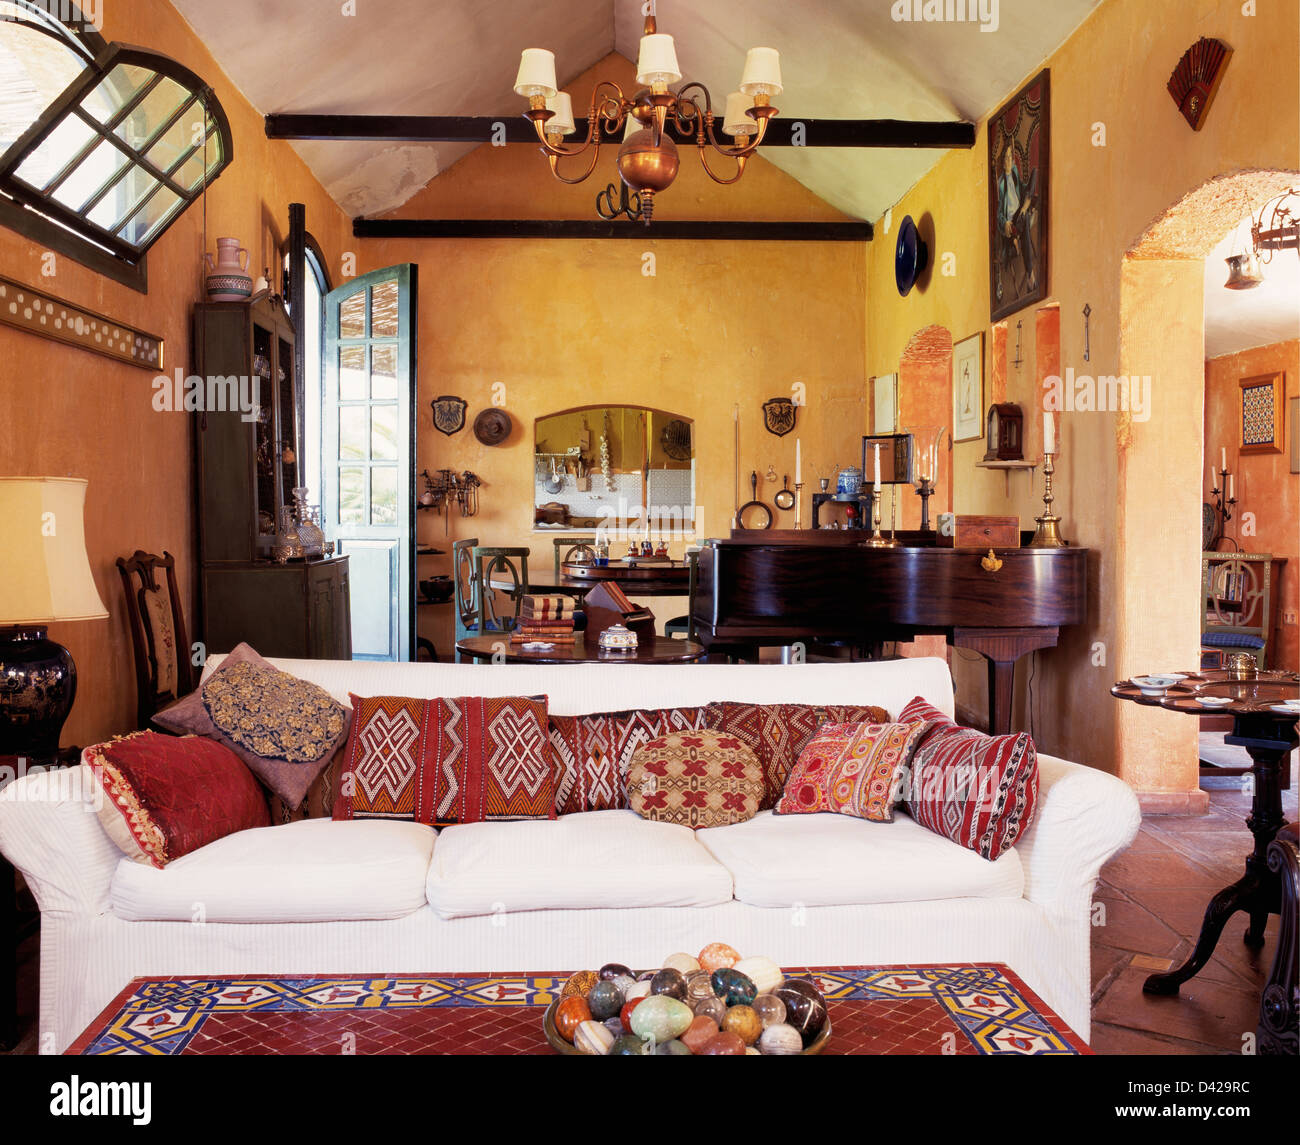 White Sofa With Patterned Cushions In Yellow Spanish Living Room With Apex  Ceiling